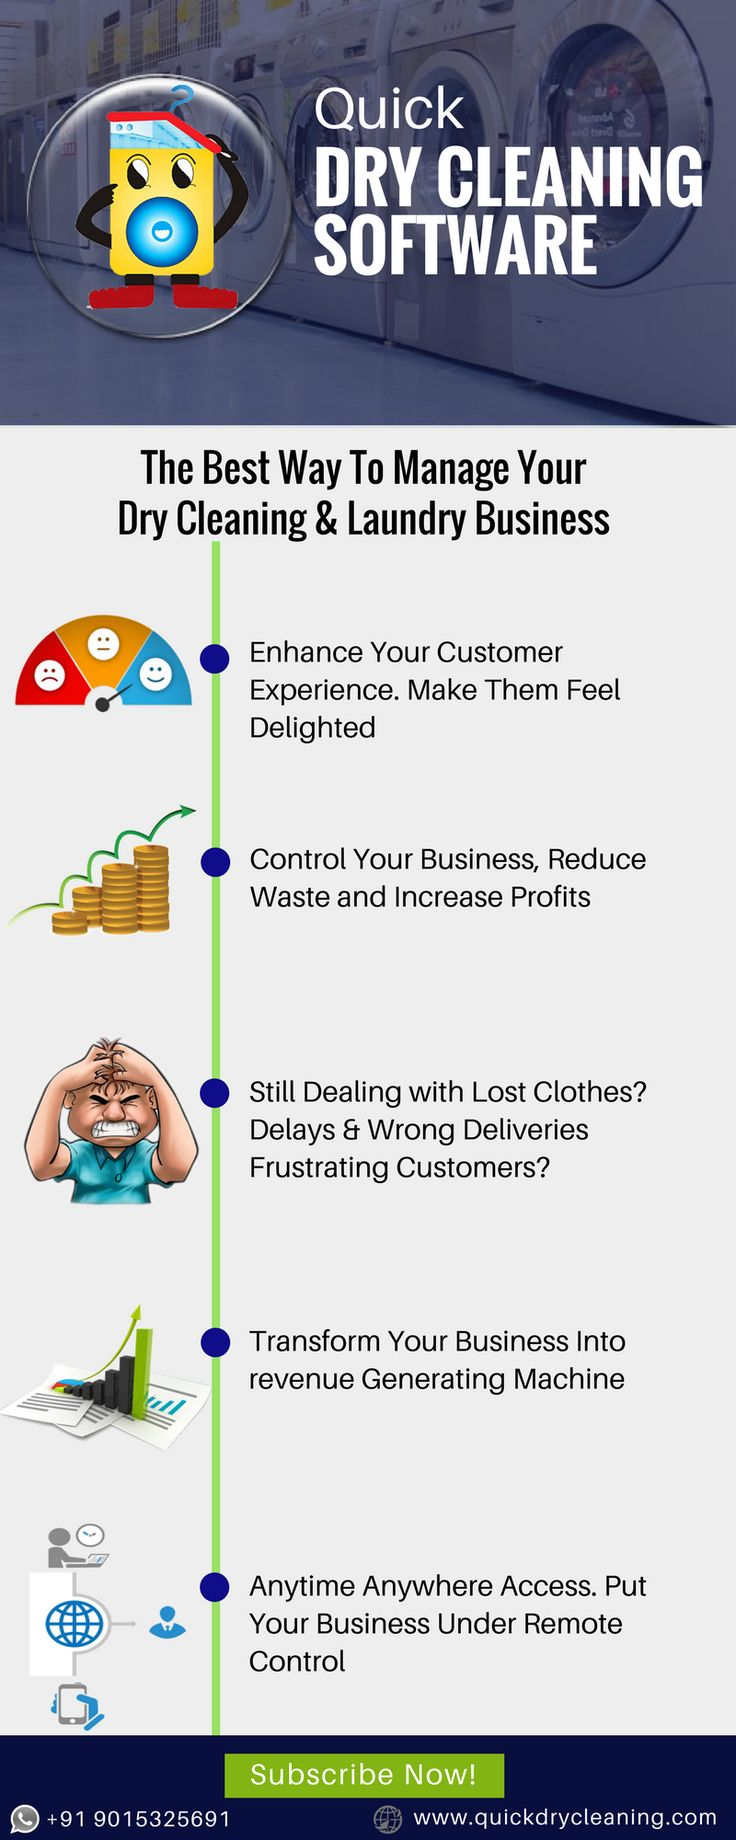 Are you still managing your Dry Cleaning Business in the old way?  Now it's time to bring a change. Subscribe to Quick Dry Cleaning Software and Scale Up your business like never before.